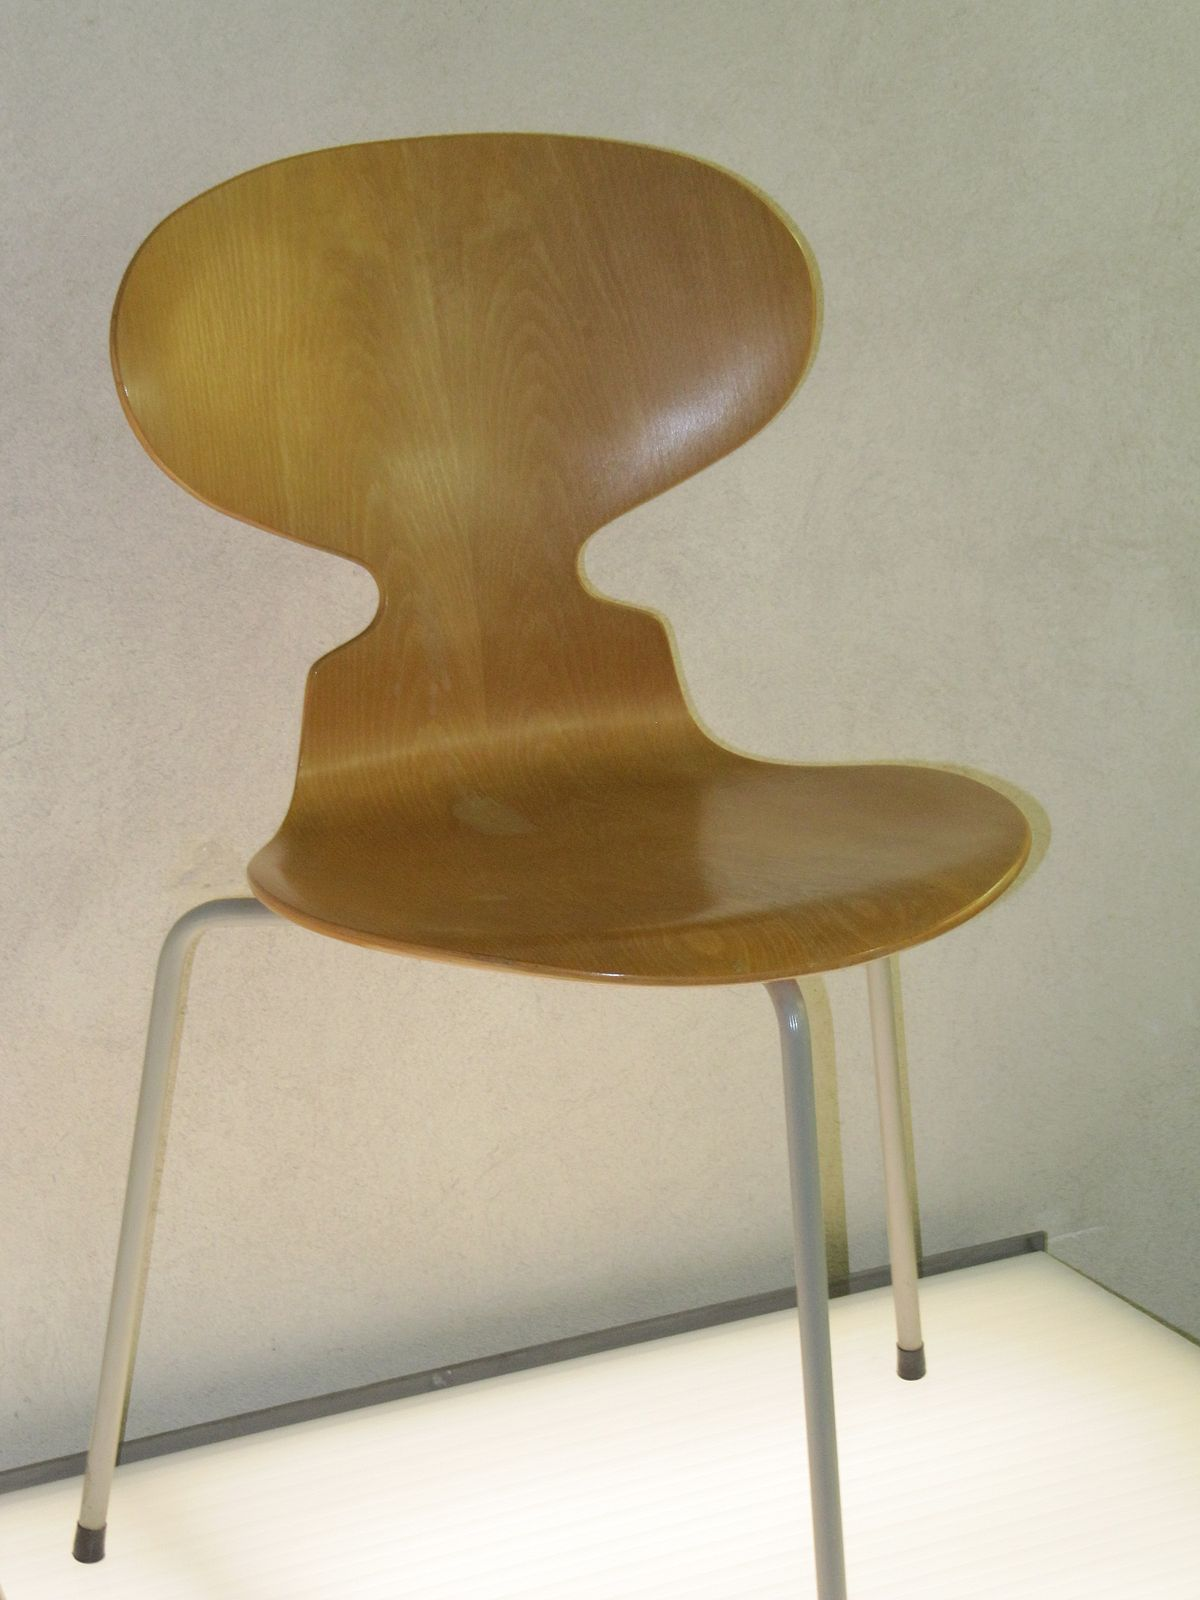 Ant chair wikipedia for 80s chair design